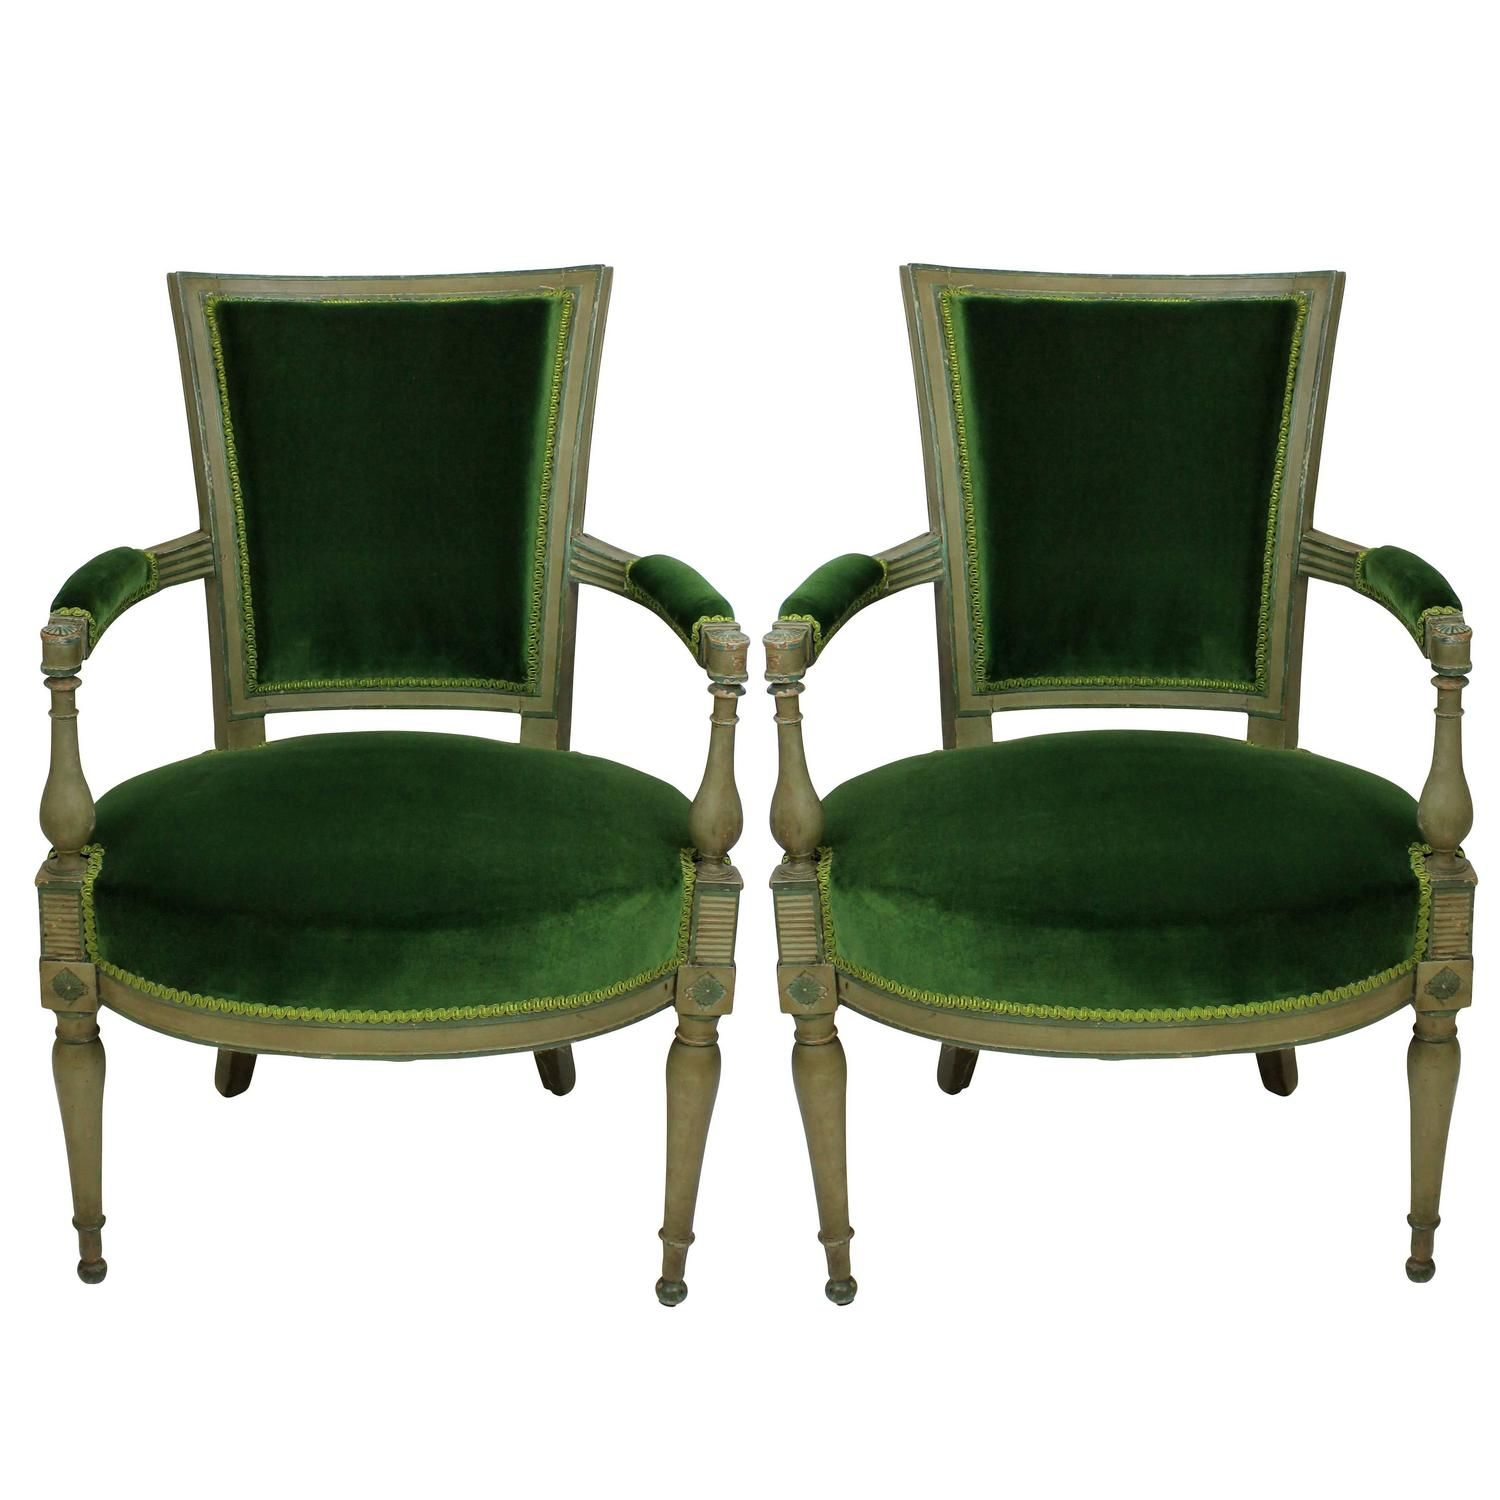 Pair of 18th Century Russian Armchairs  | From a unique collection of antique and modern armchairs at https://www.1stdibs.com/furniture/seating/armchairs/